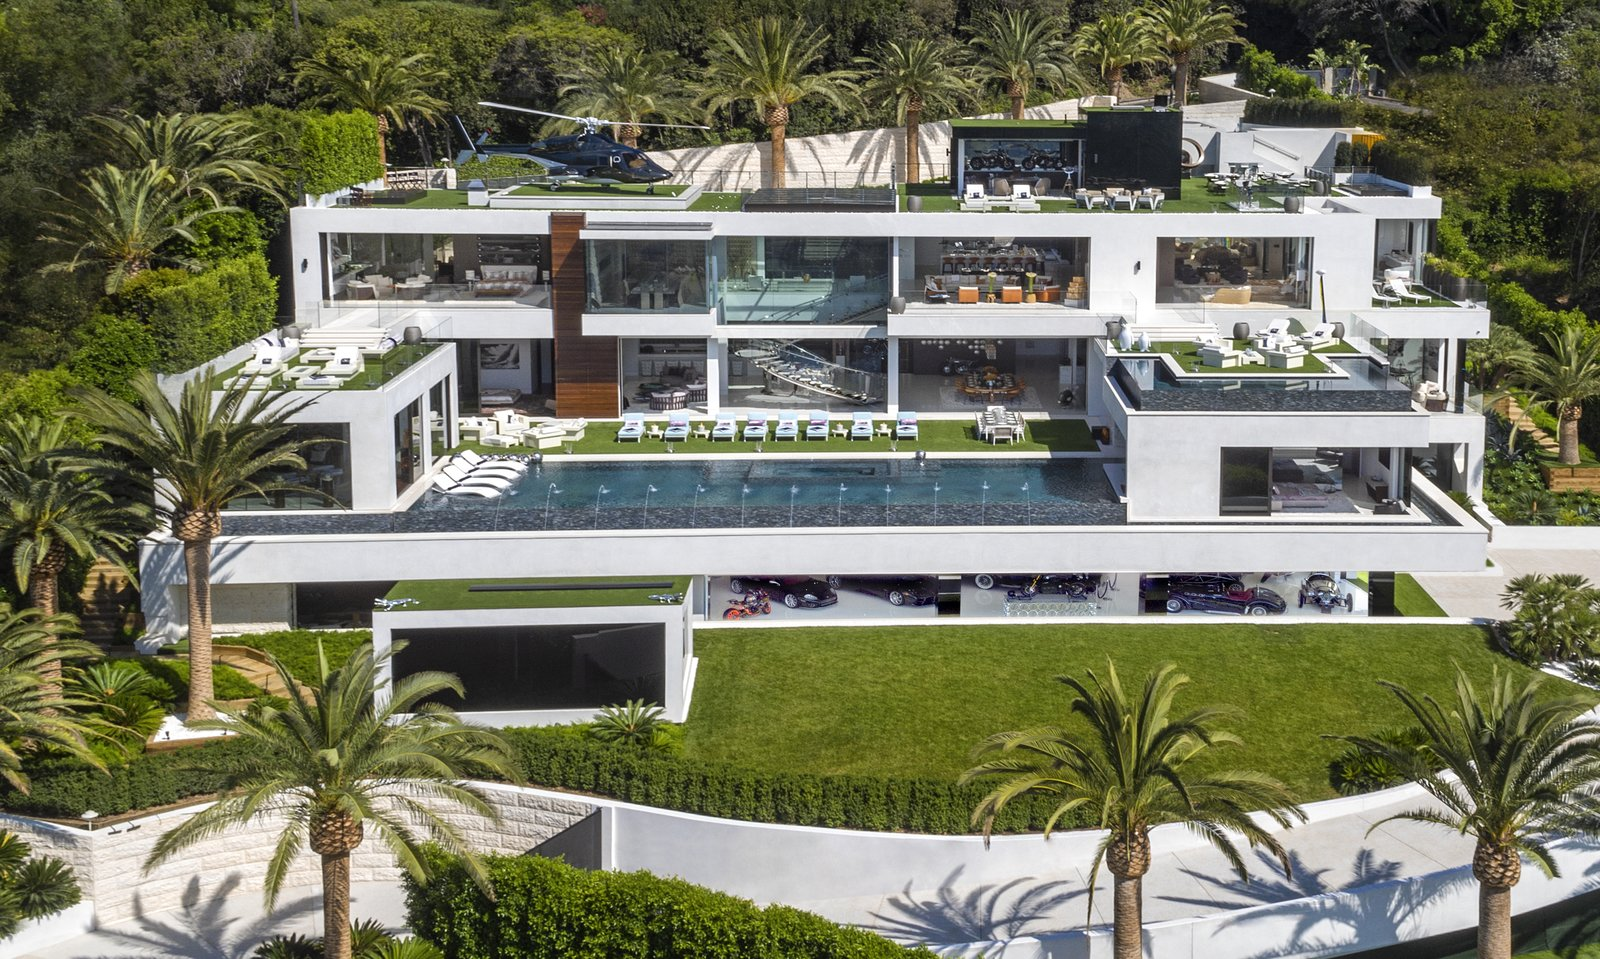 Photo 1 of 8 in Most Expensive Home in the U.S. Lists for $250 Million